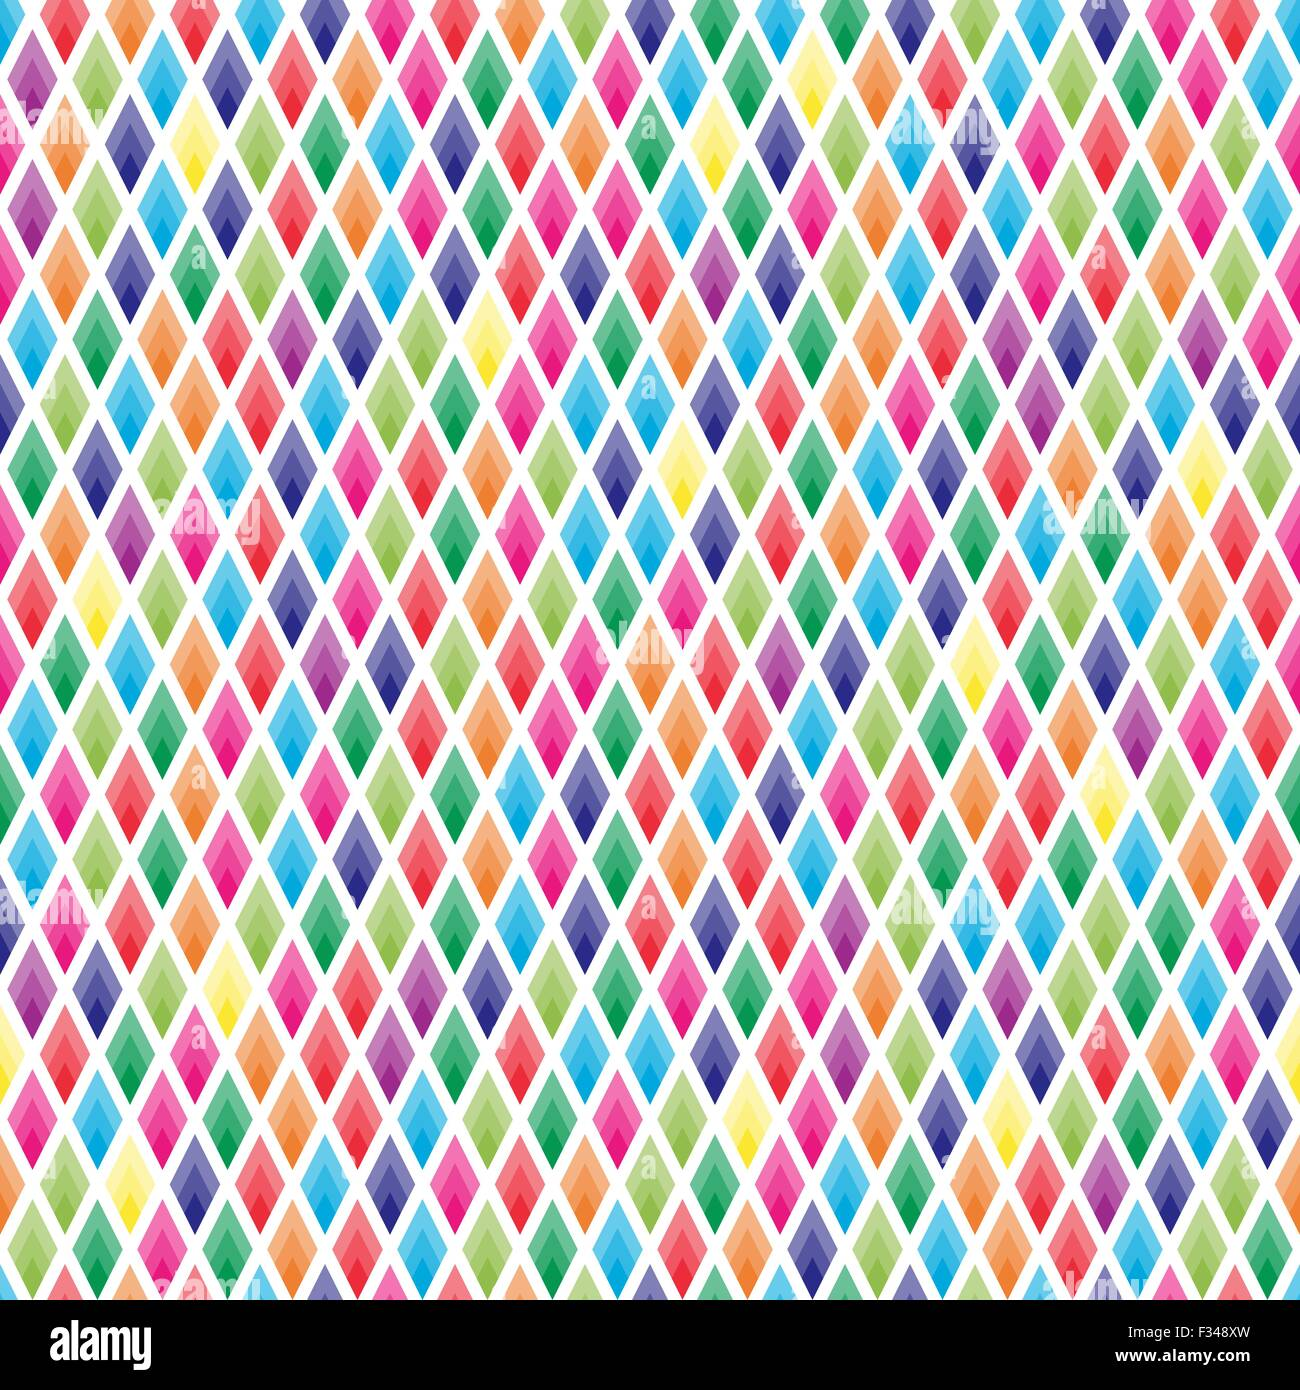 Seamless background of colorful lozenges on white - Stock Vector